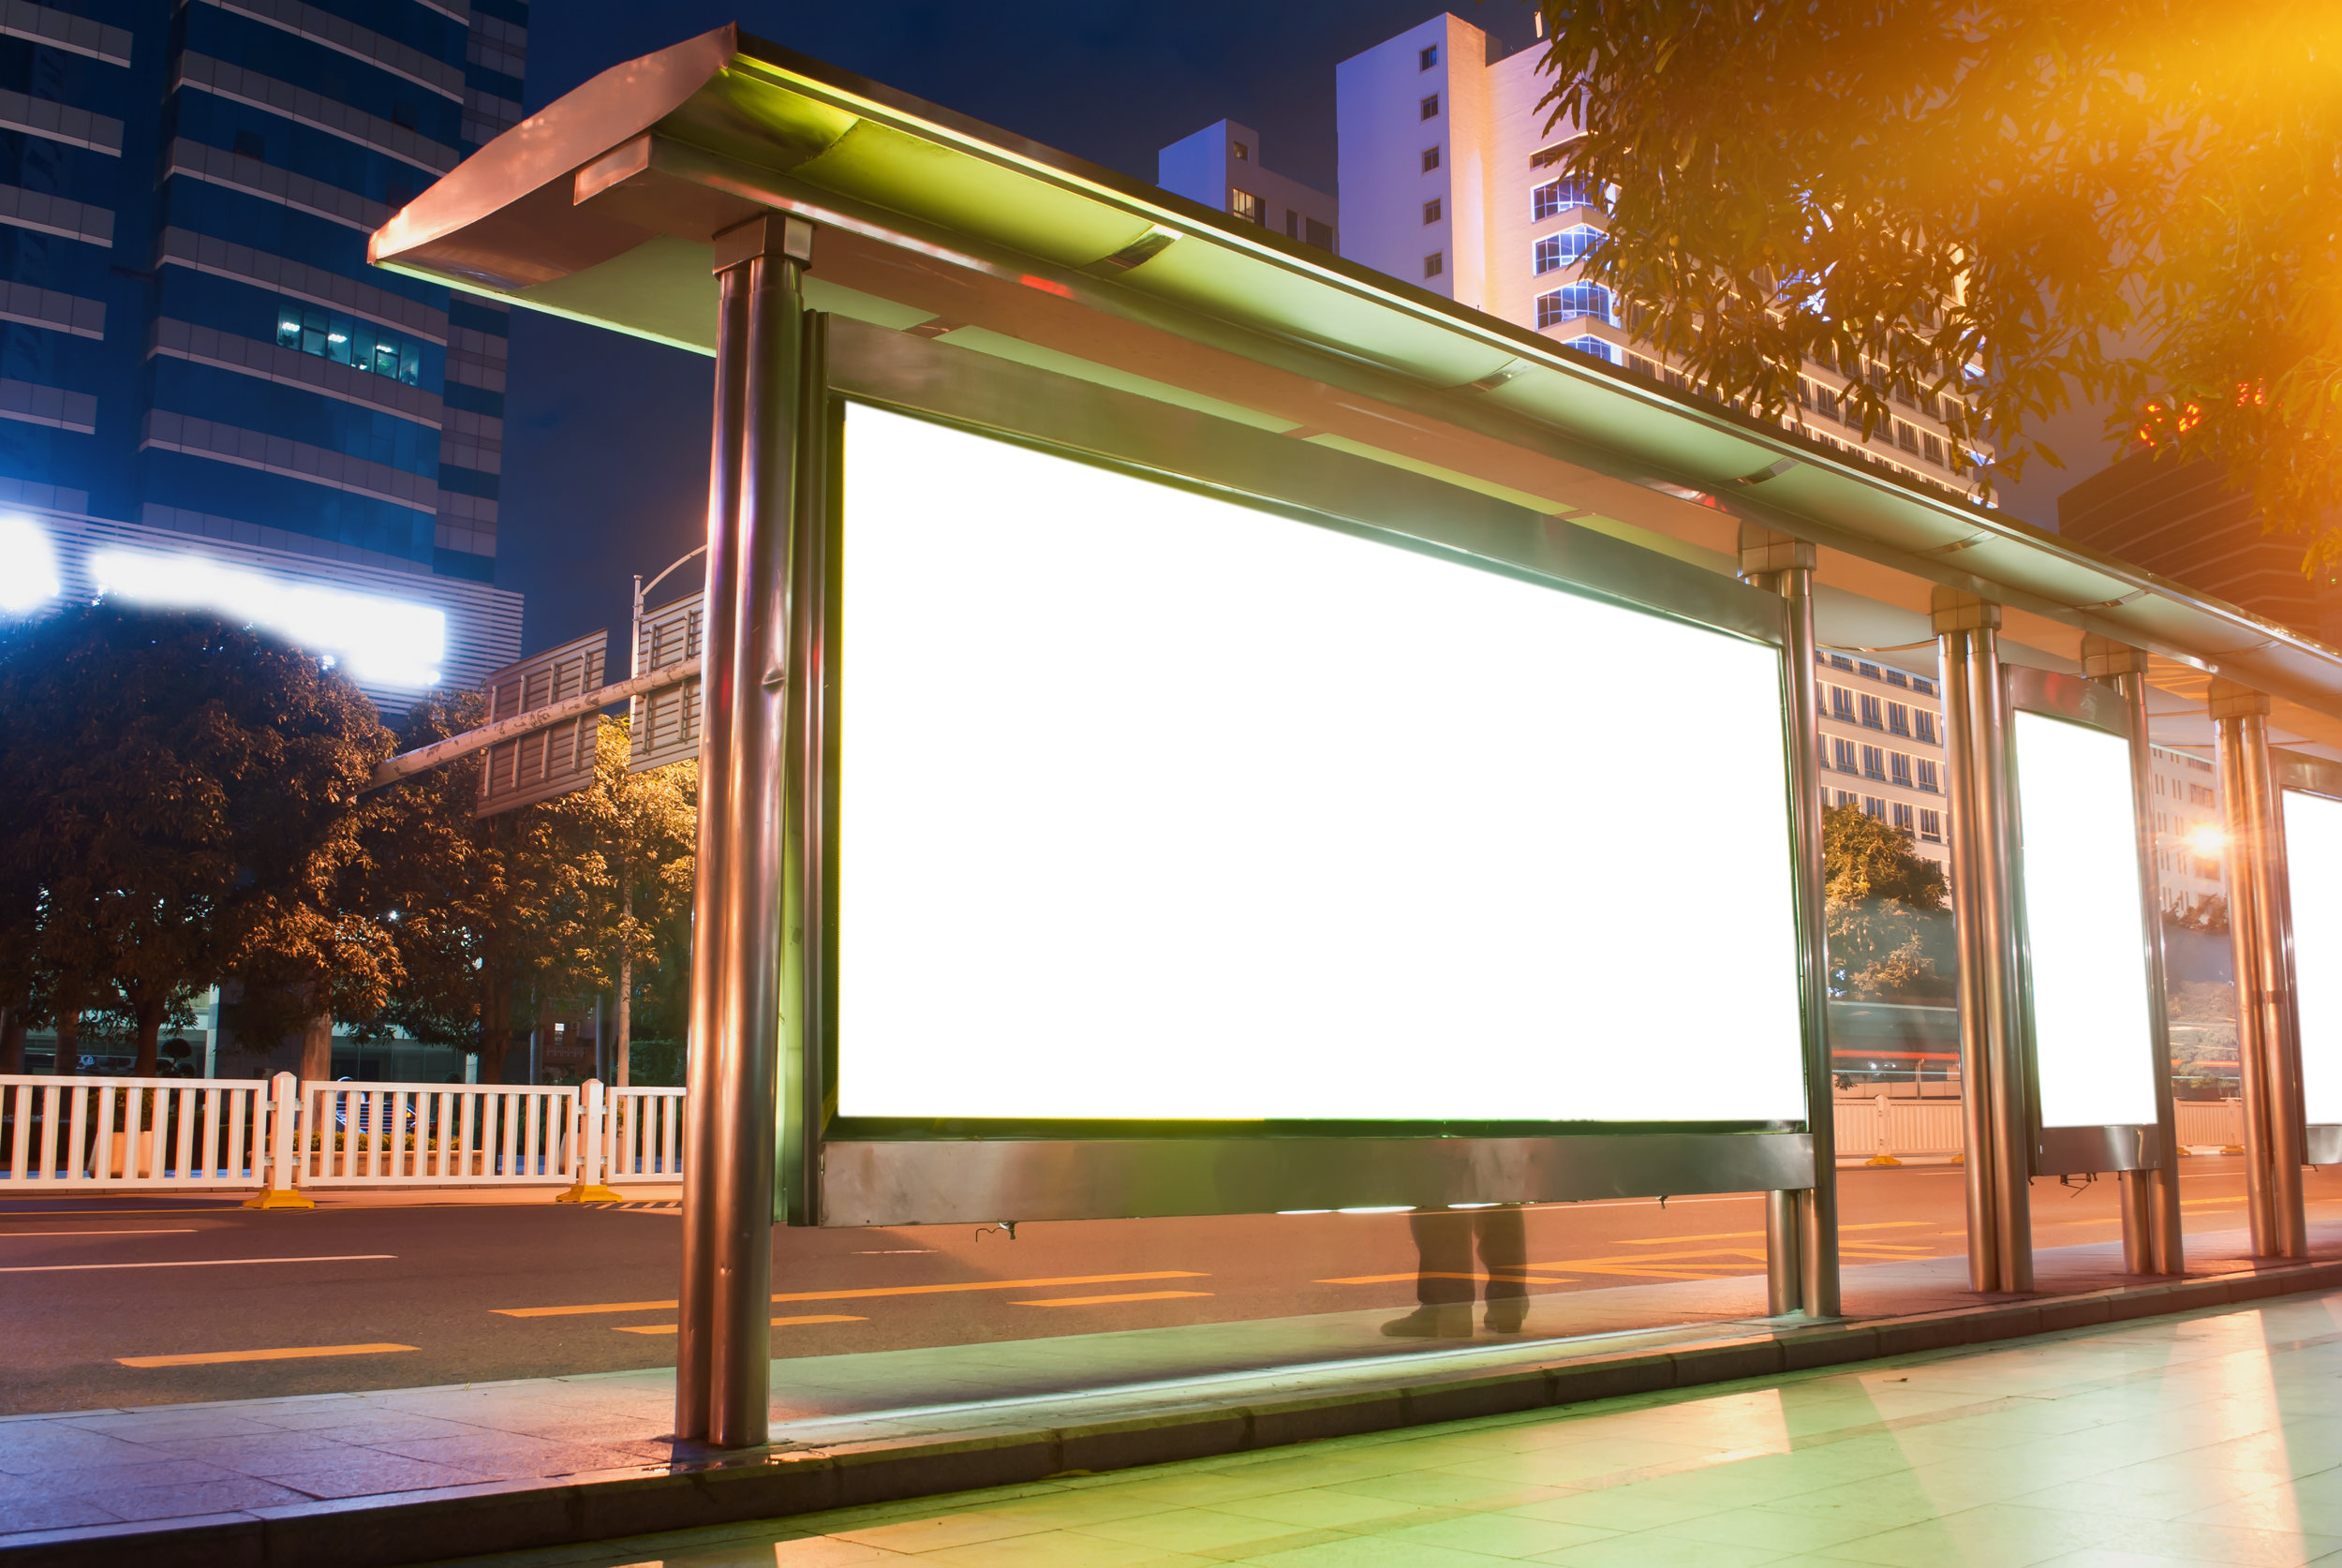 outdoor-advertising-services.jpg